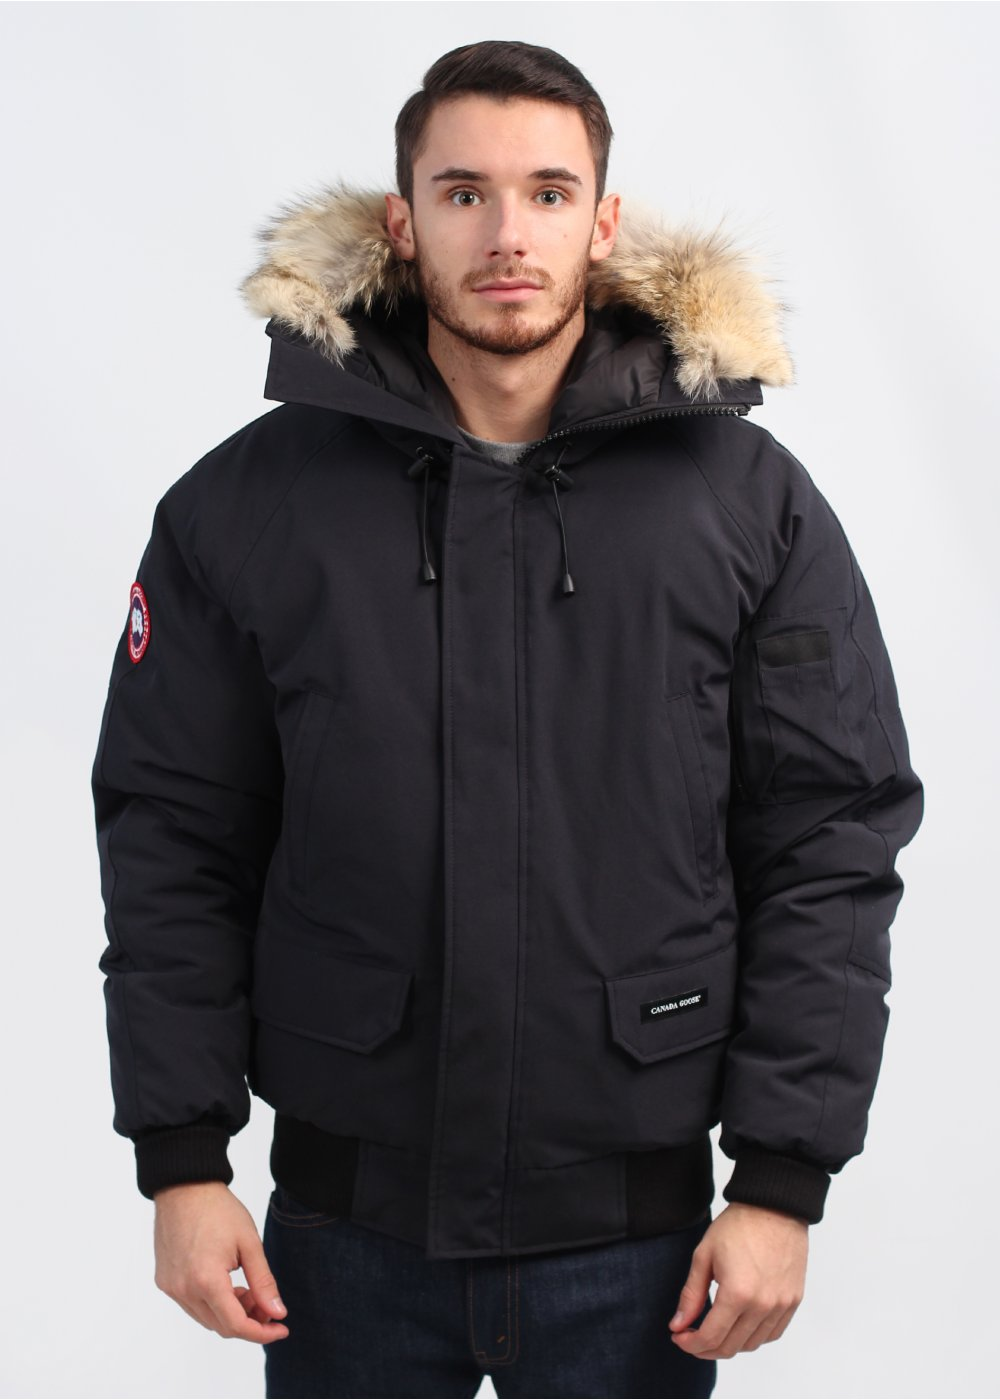 Canada Goose victoria parka replica discounts - 2014/15 Fall & Winter Jacket thread. - Page 7